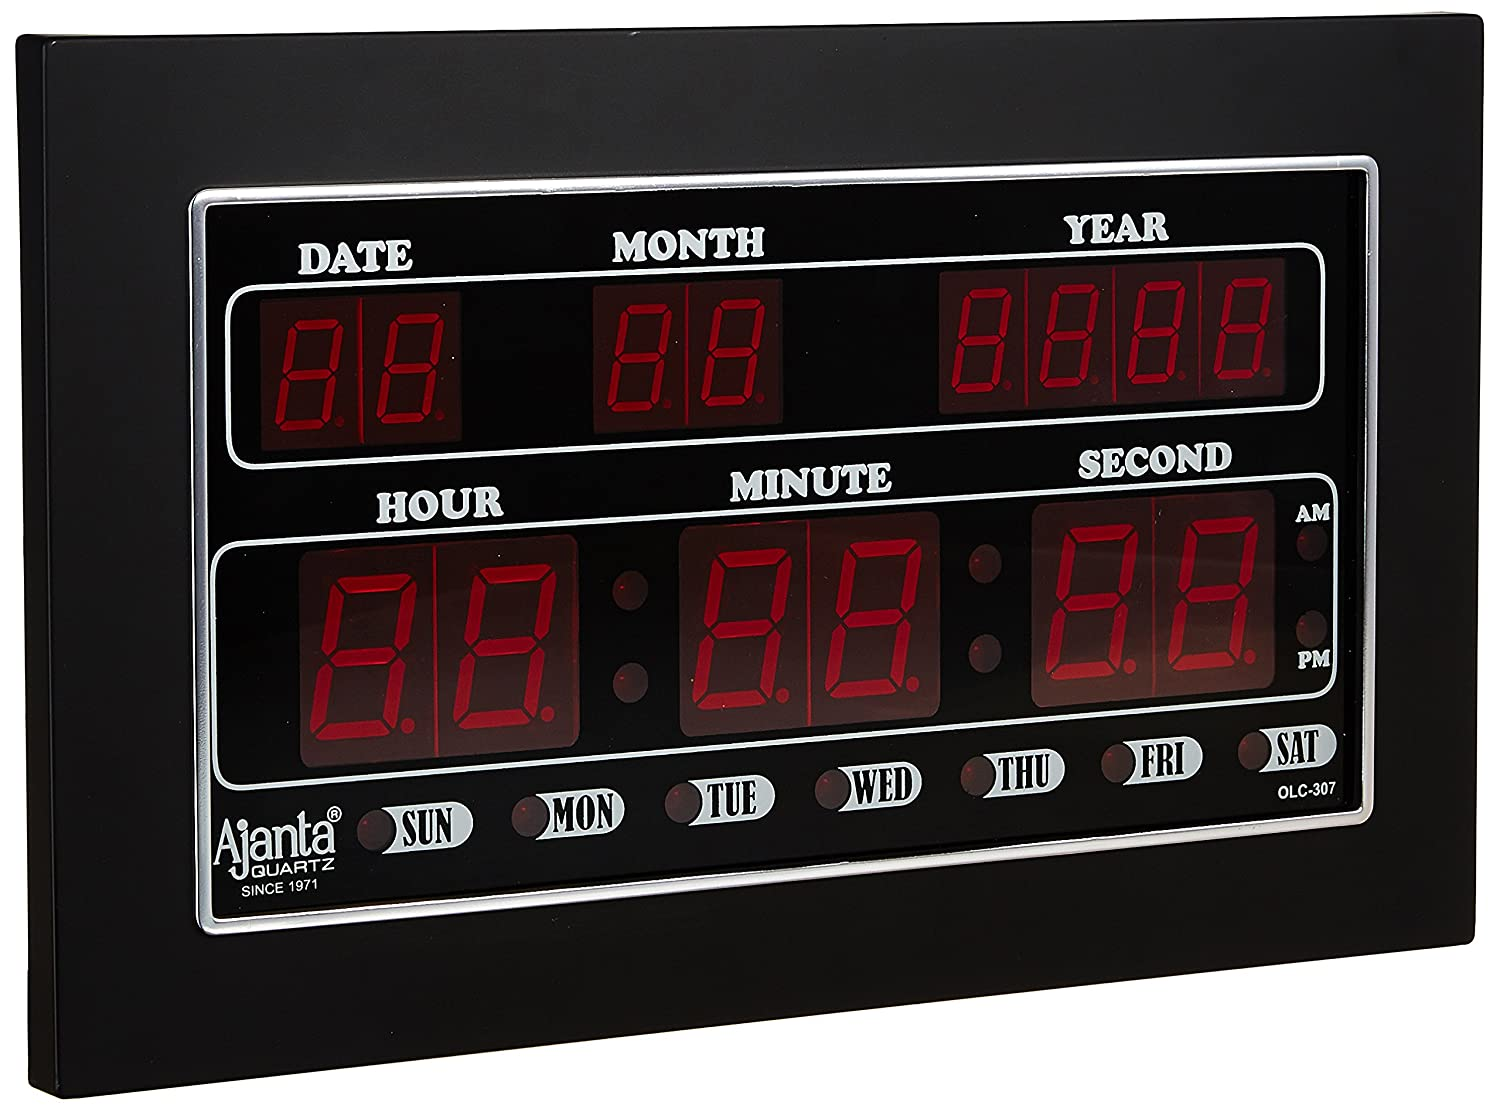 Buy Ajanta Quartz Digital Led Plastic Wall Clock 34 Cm X 20 4 Electronics Circuit Displays And Timing For Single Board Computer Black Online At Low Prices In India